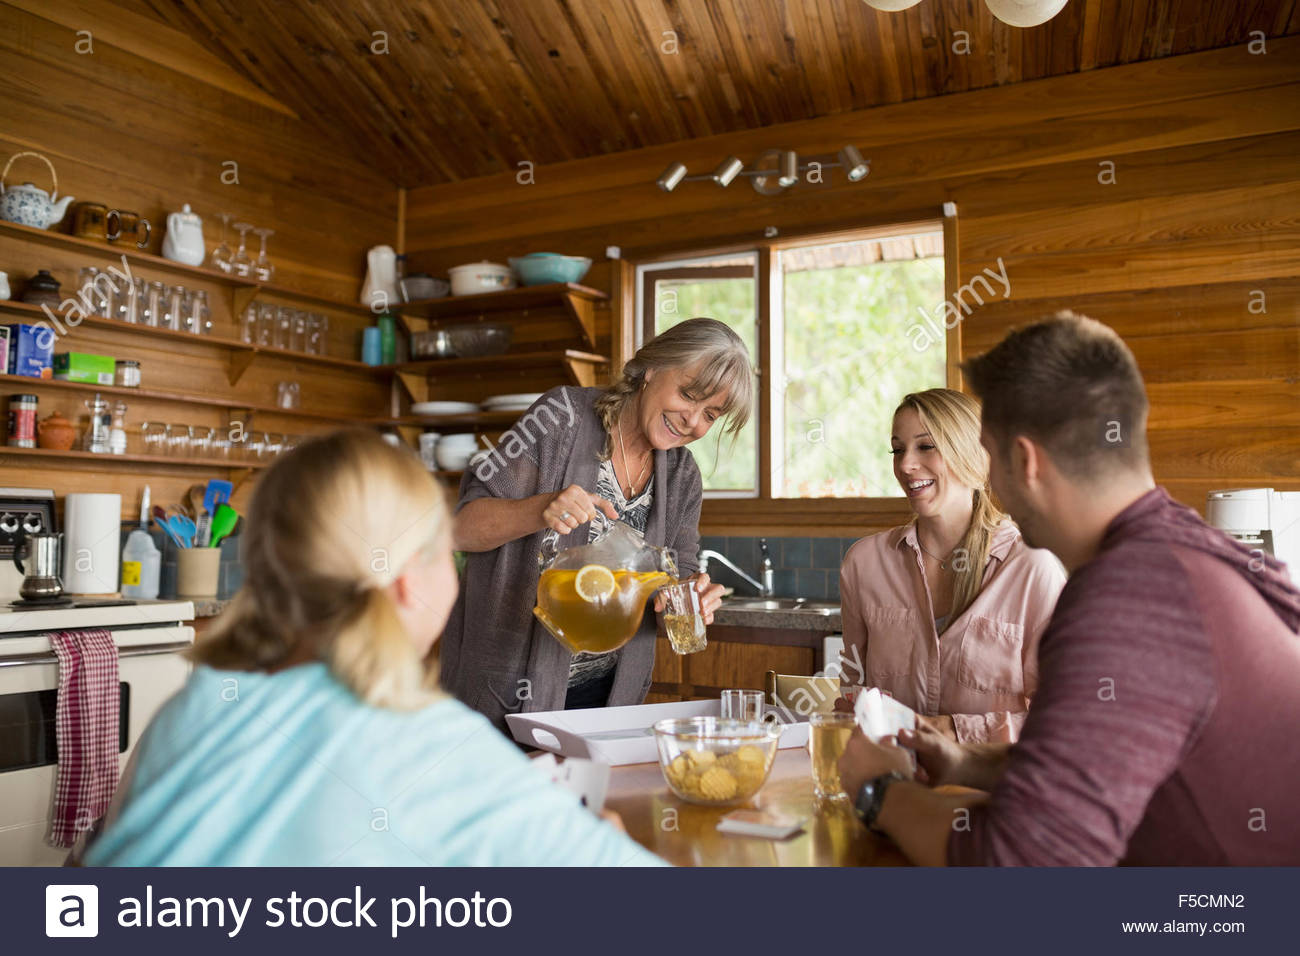 Woman pouring iced tea family cabin dining table - Stock Image